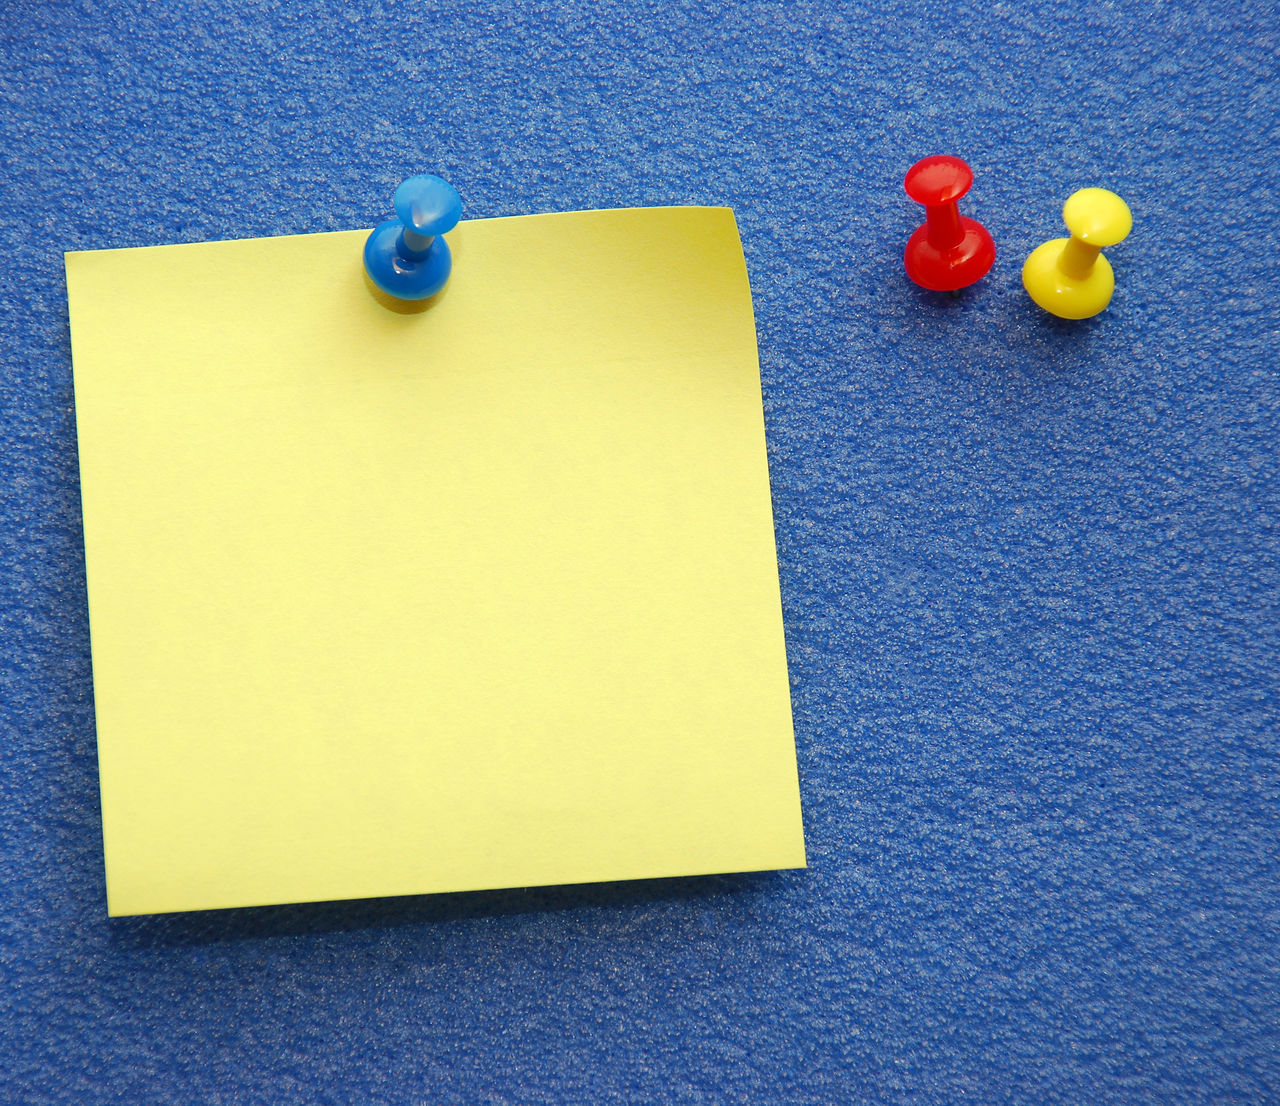 A yellow notepaper pinned on a blue board plus red and yellow extra pins at the side. Adhesive Note Attached Blank Bulletin Board Bulletin Board Bulletinboard Chores Close-up Communication Copy Space Day Indoors  Message No People Note Notepaper Notify Reminder Reminders Removable Small Group Of Objects Sticky Sticky Notes Thumbtack Yellow